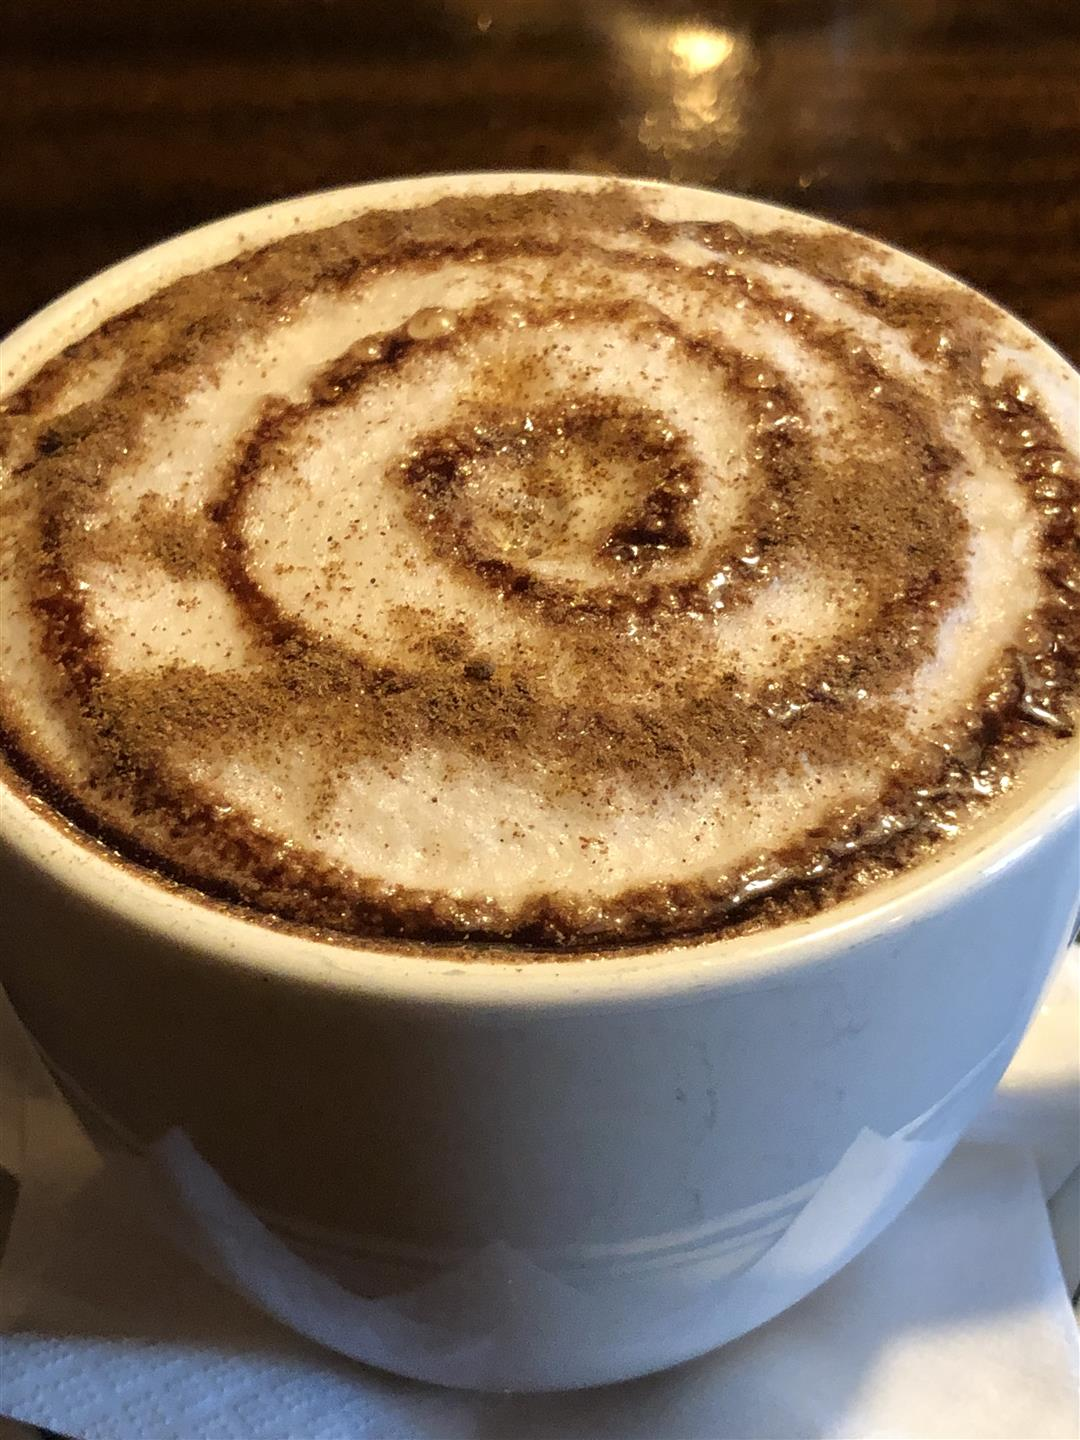 A hot chocalte with a swirl on top